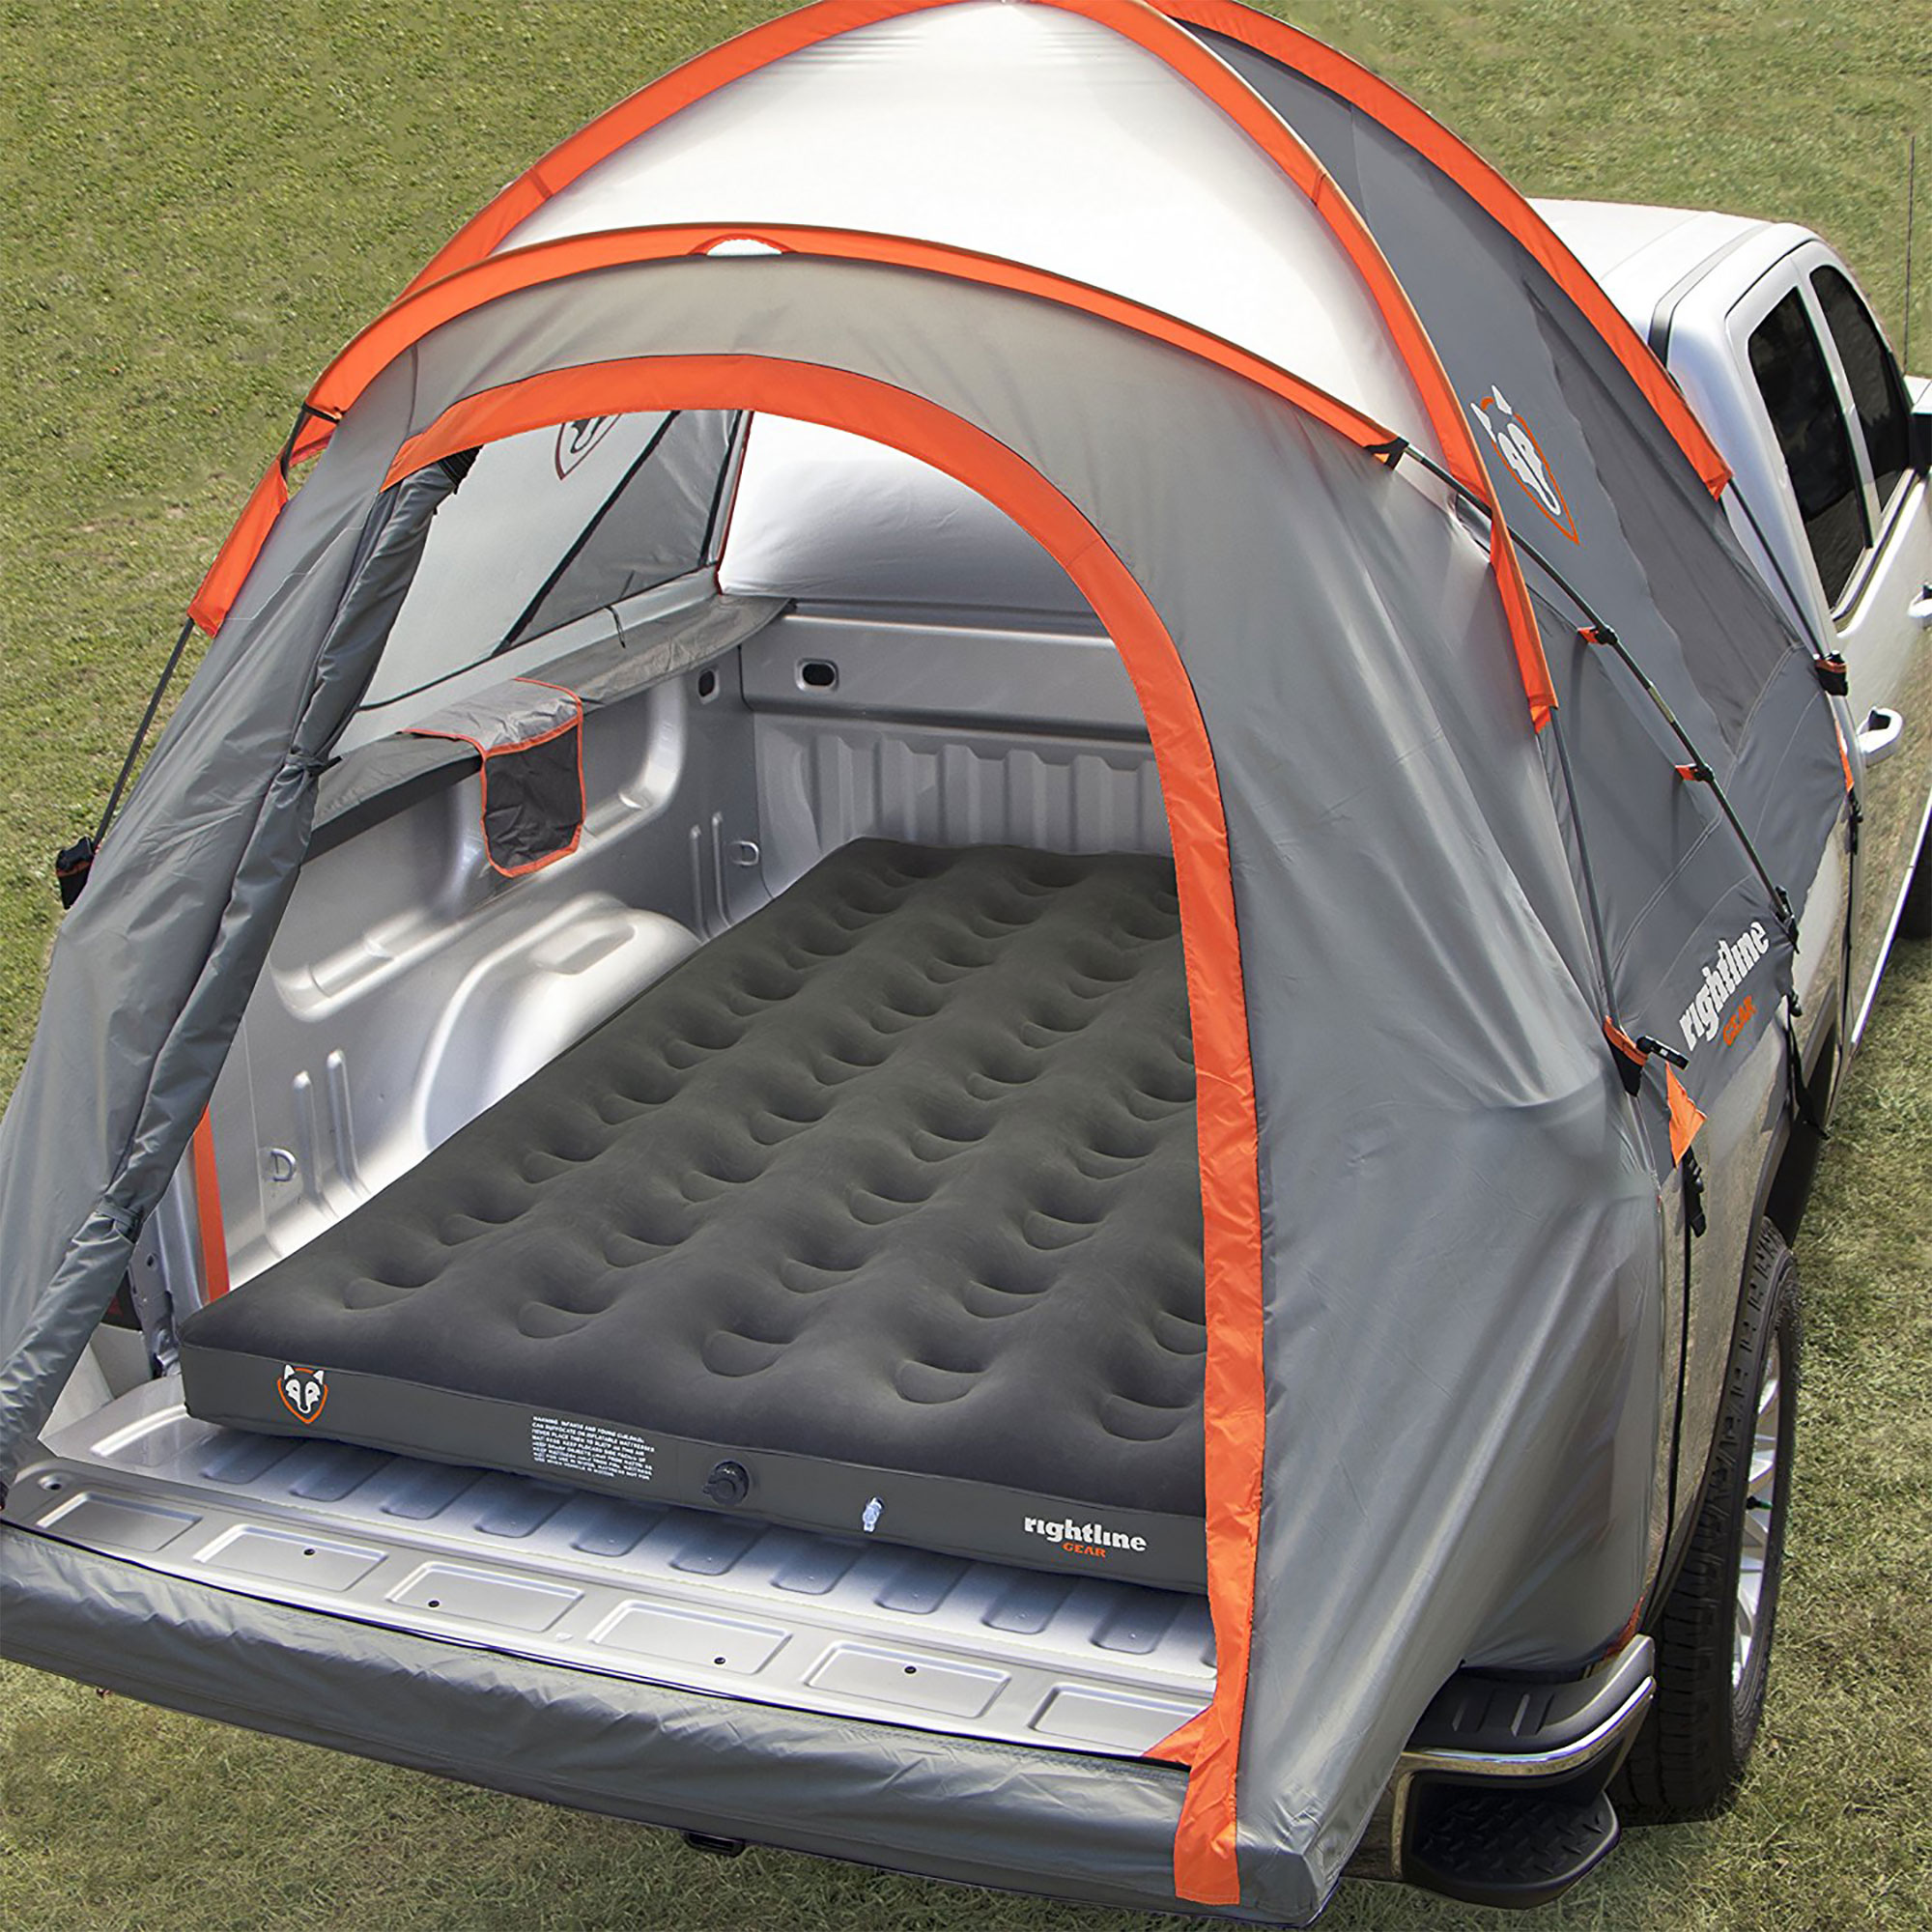 Camping Beds For Tents >> Rightline Gear Truck Inflatable Air Bed Camping Outdoor